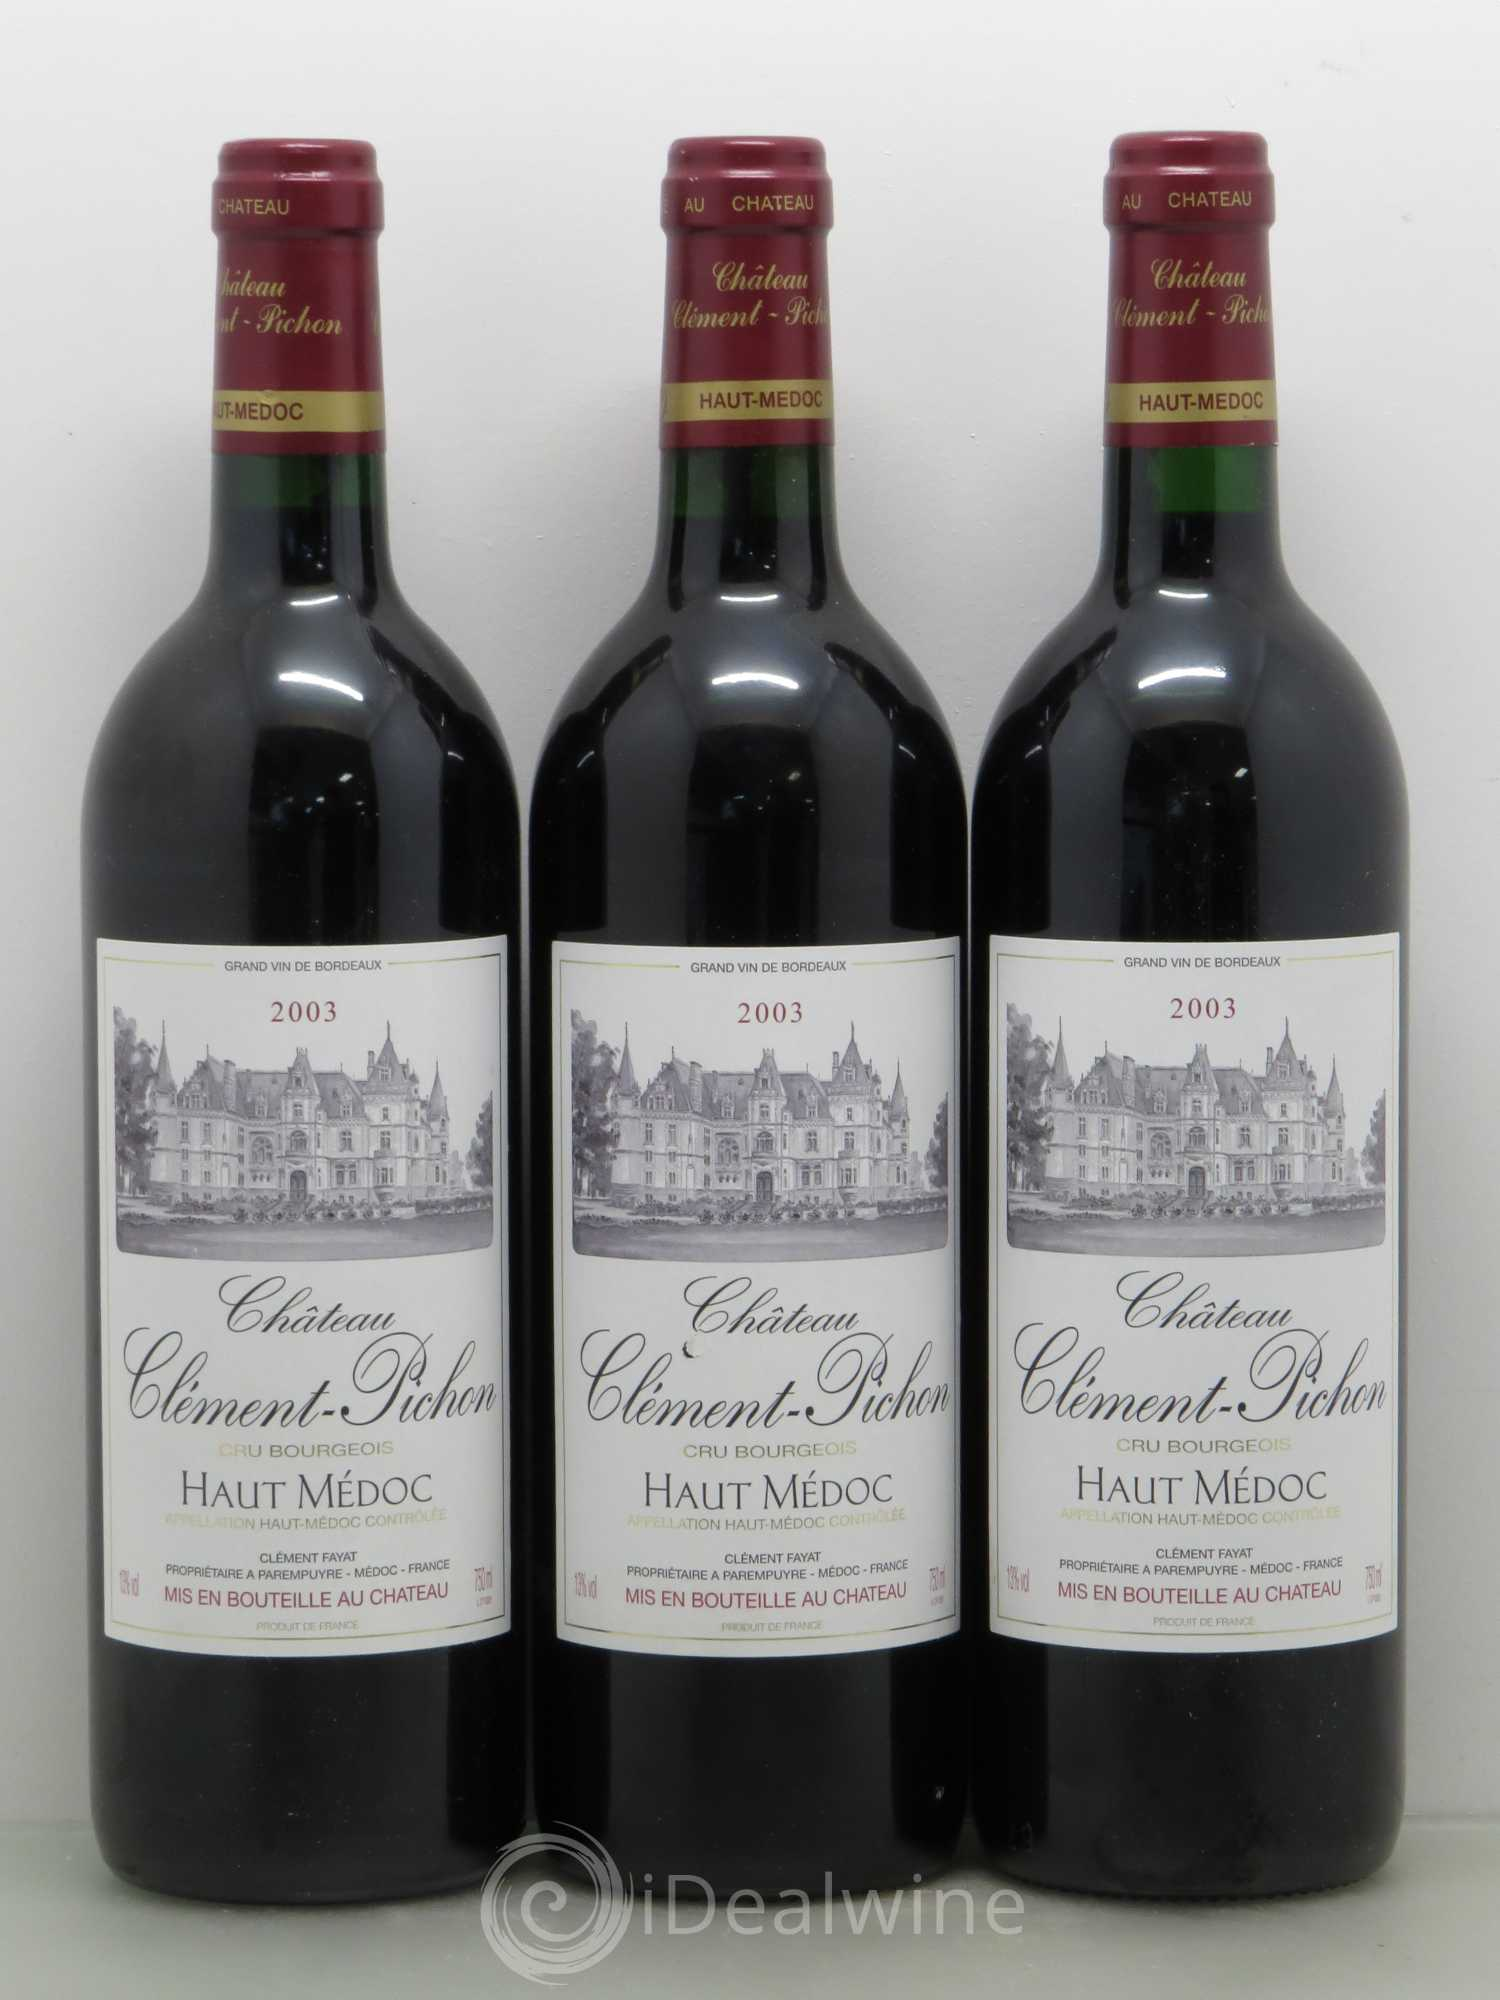 Buy ch teau cl ment pichon cru bourgeois 2003 lot 11664 for Buy chateaubriand